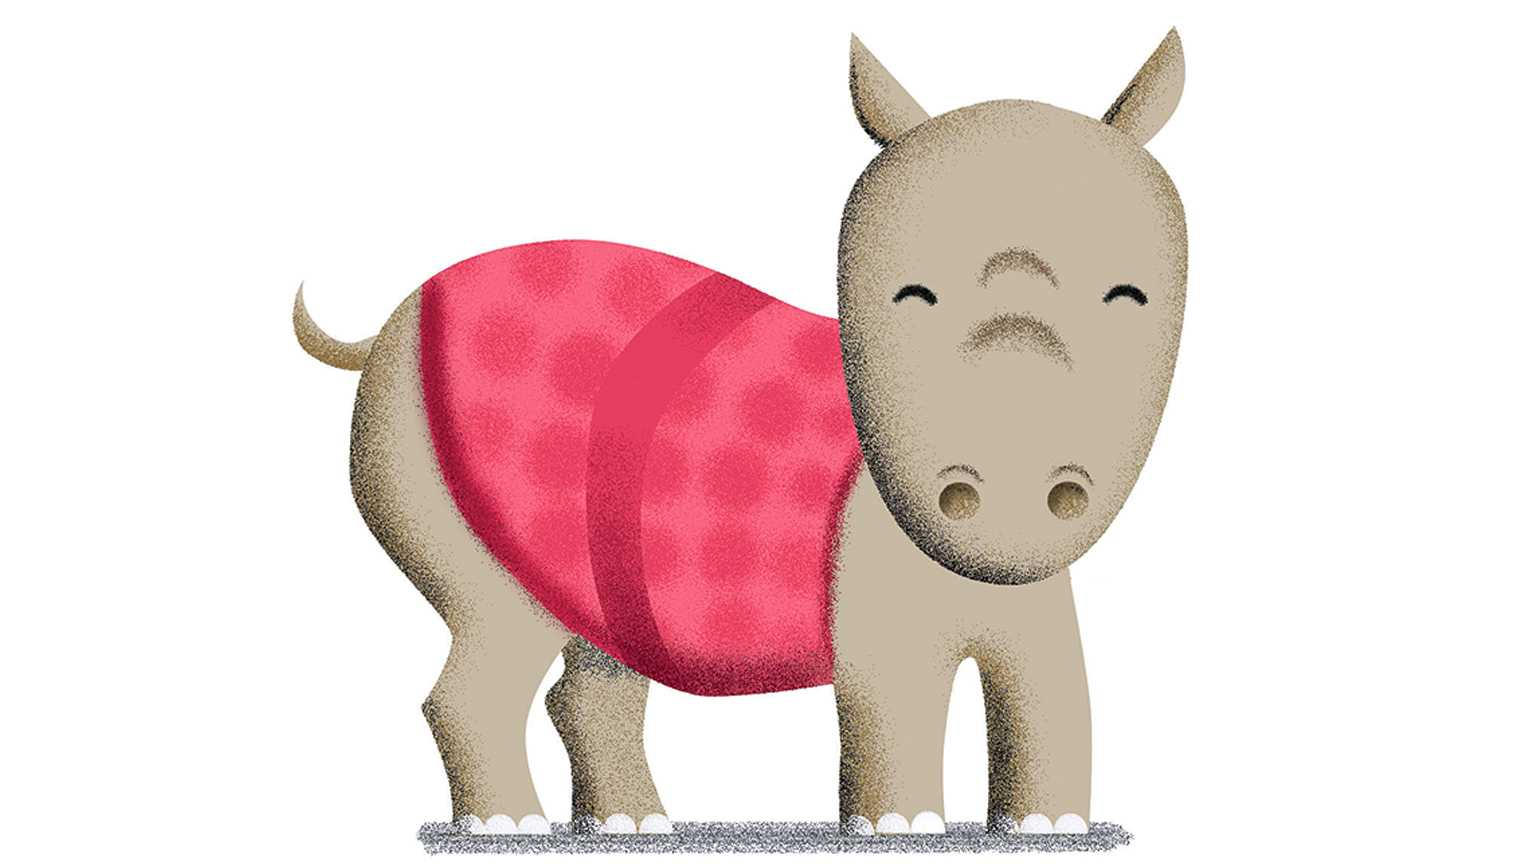 An illustration depicting a happy rhinoceros in a pink blanket.